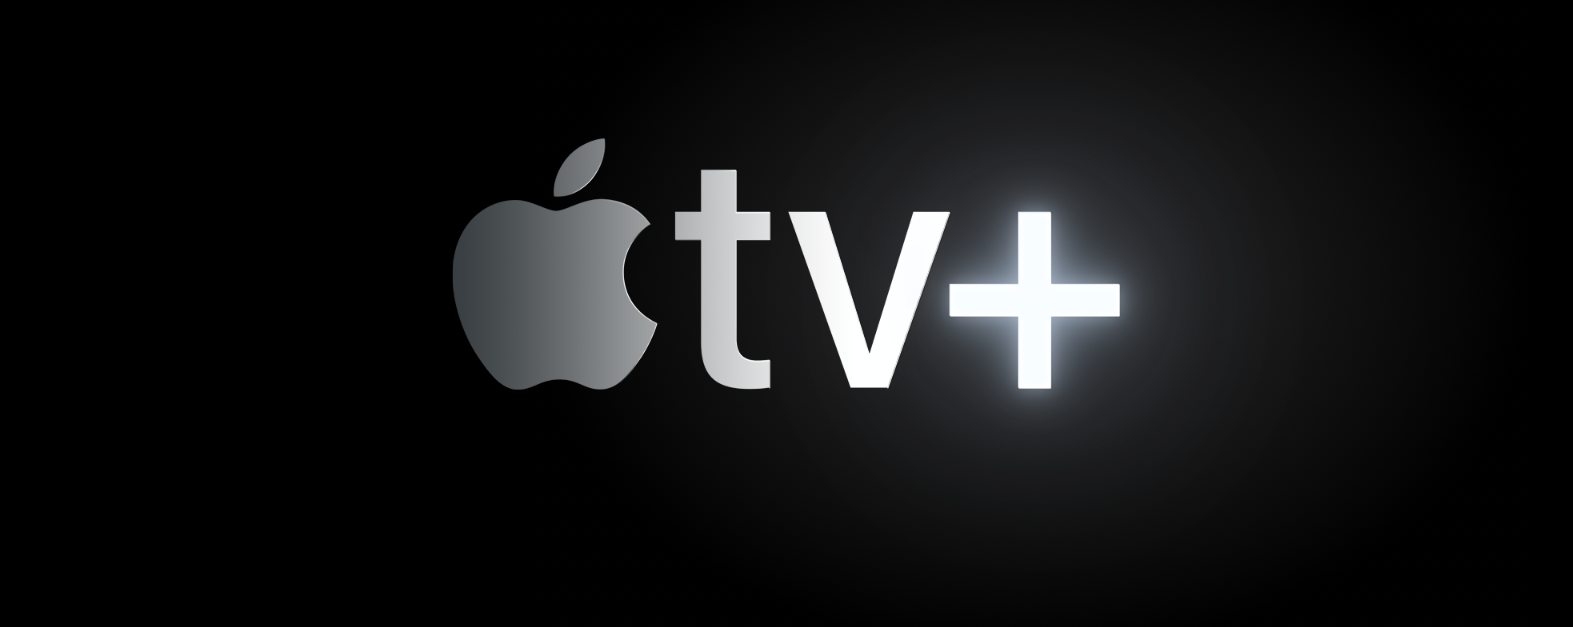 Apple TV+ von Apple vorgestellt, Apple Streaming Service, Apple TV+ Kosten, Apple TV+ deutsch, Apple TV+ Steven Spielberg, Hack4Life, Fabian Geissler, Apple TV+ kostenlos